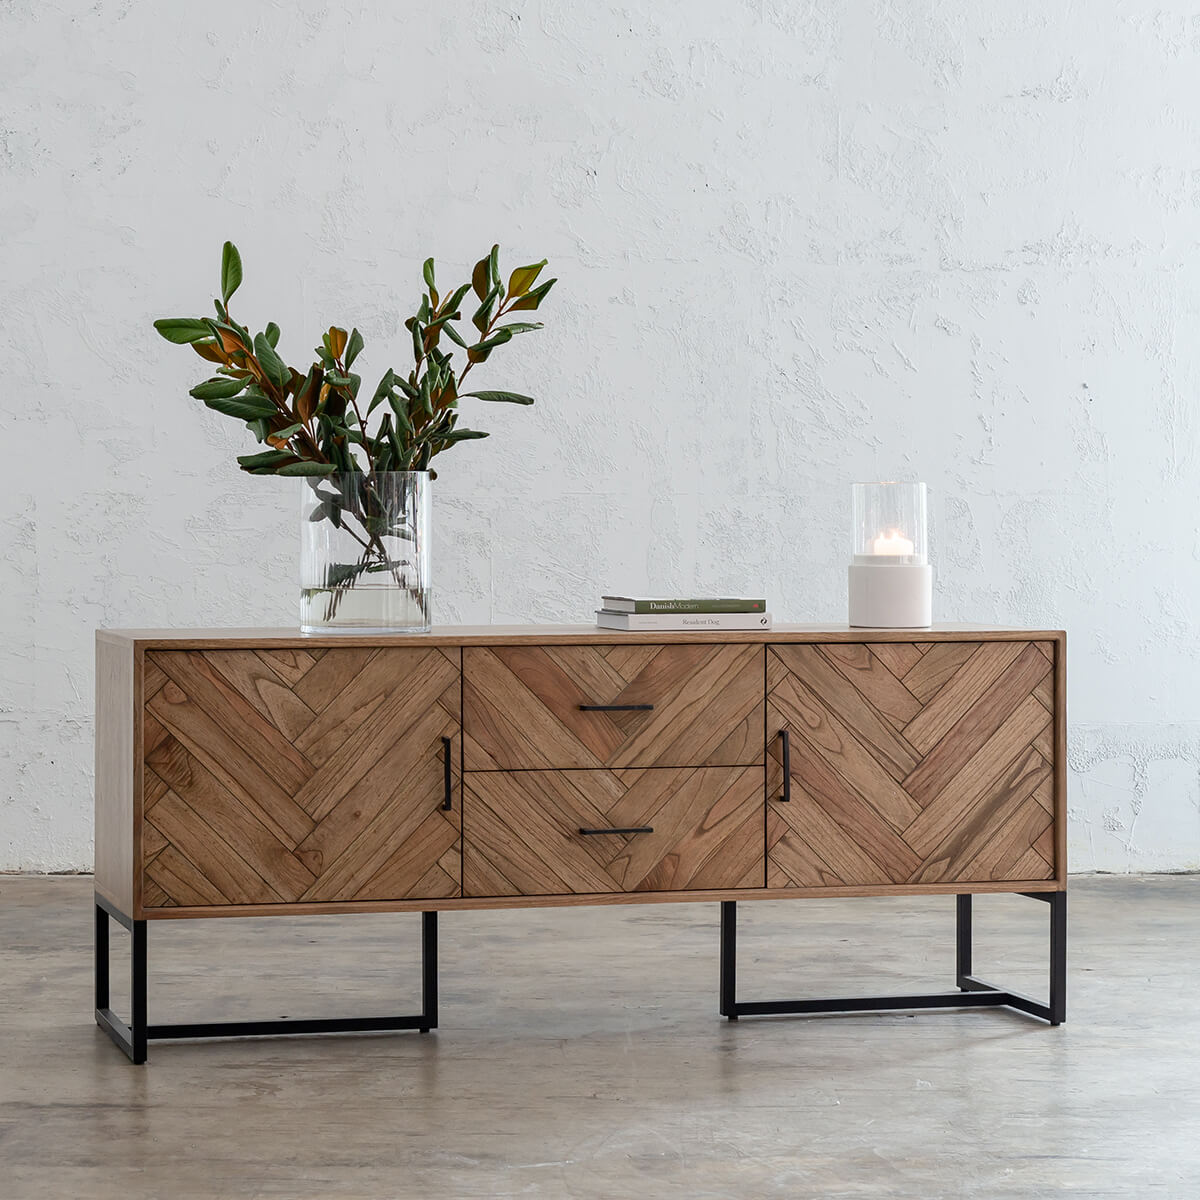 Find the perfect herringbone timber furniture